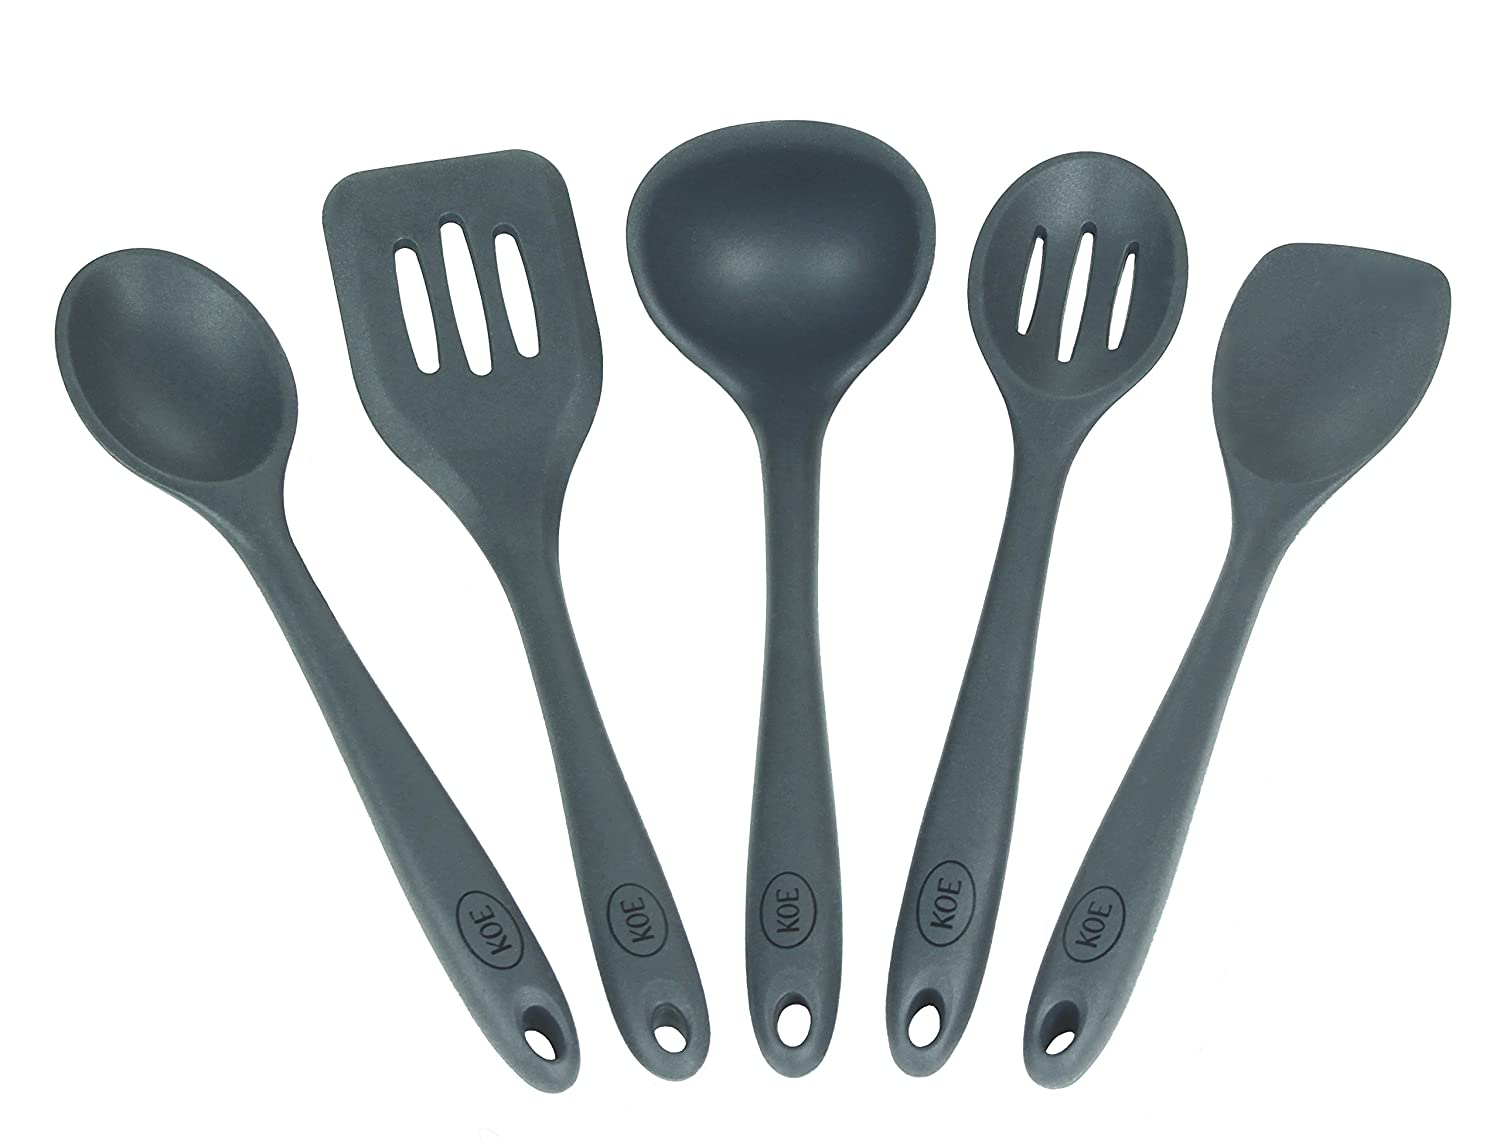 Amazon.com: Koe Premium 5 Piece Silicone Kitchen Utensil Set, Non Stick U0026  Heat Resistant: Kitchen U0026 Dining